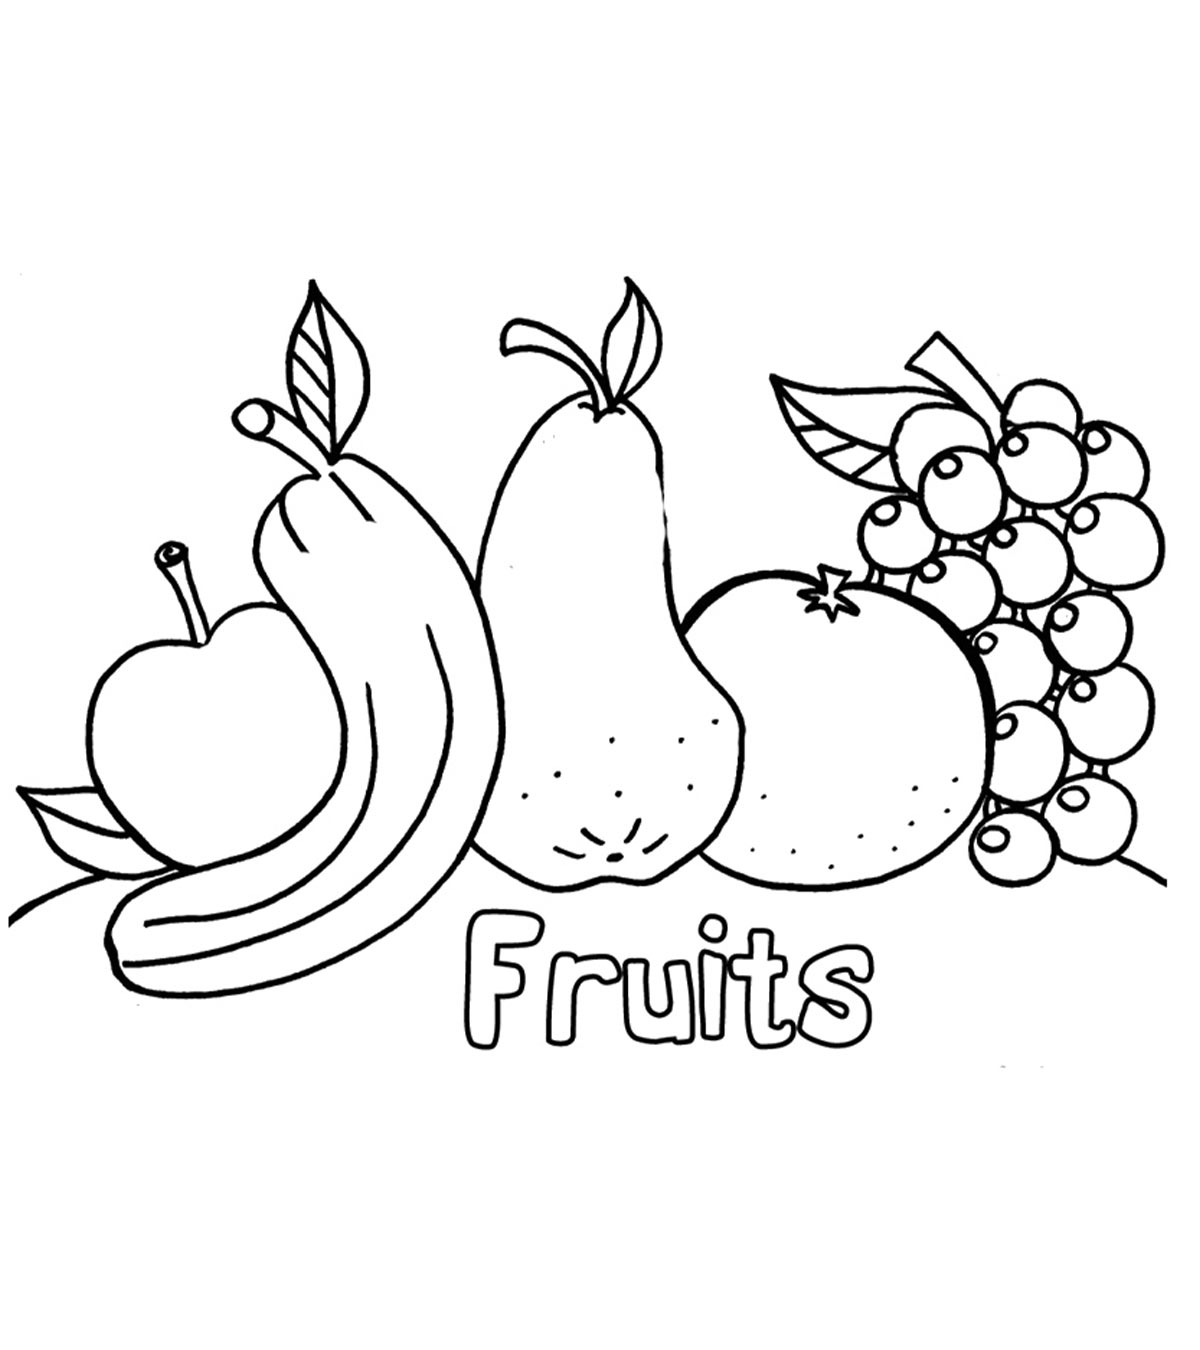 Cute Apple Tree Coloring Page - Free Printable Coloring Pages for Kids | 1350x1200